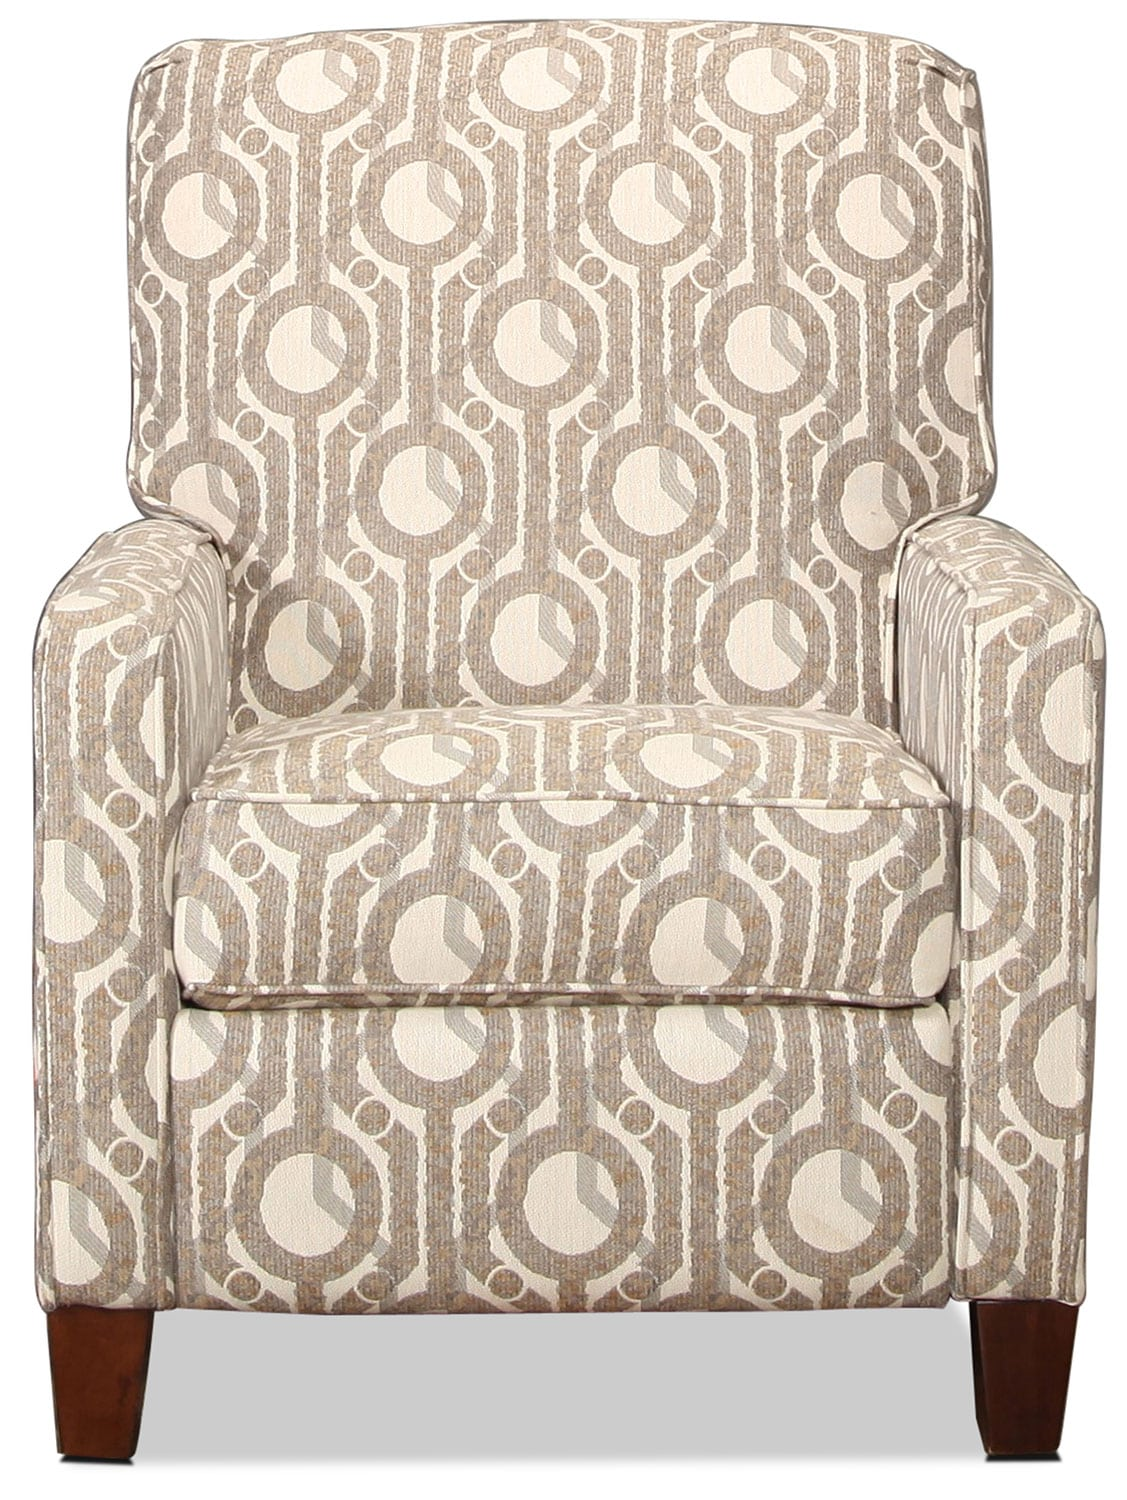 Sacremento High-Leg Recliner - Geometric